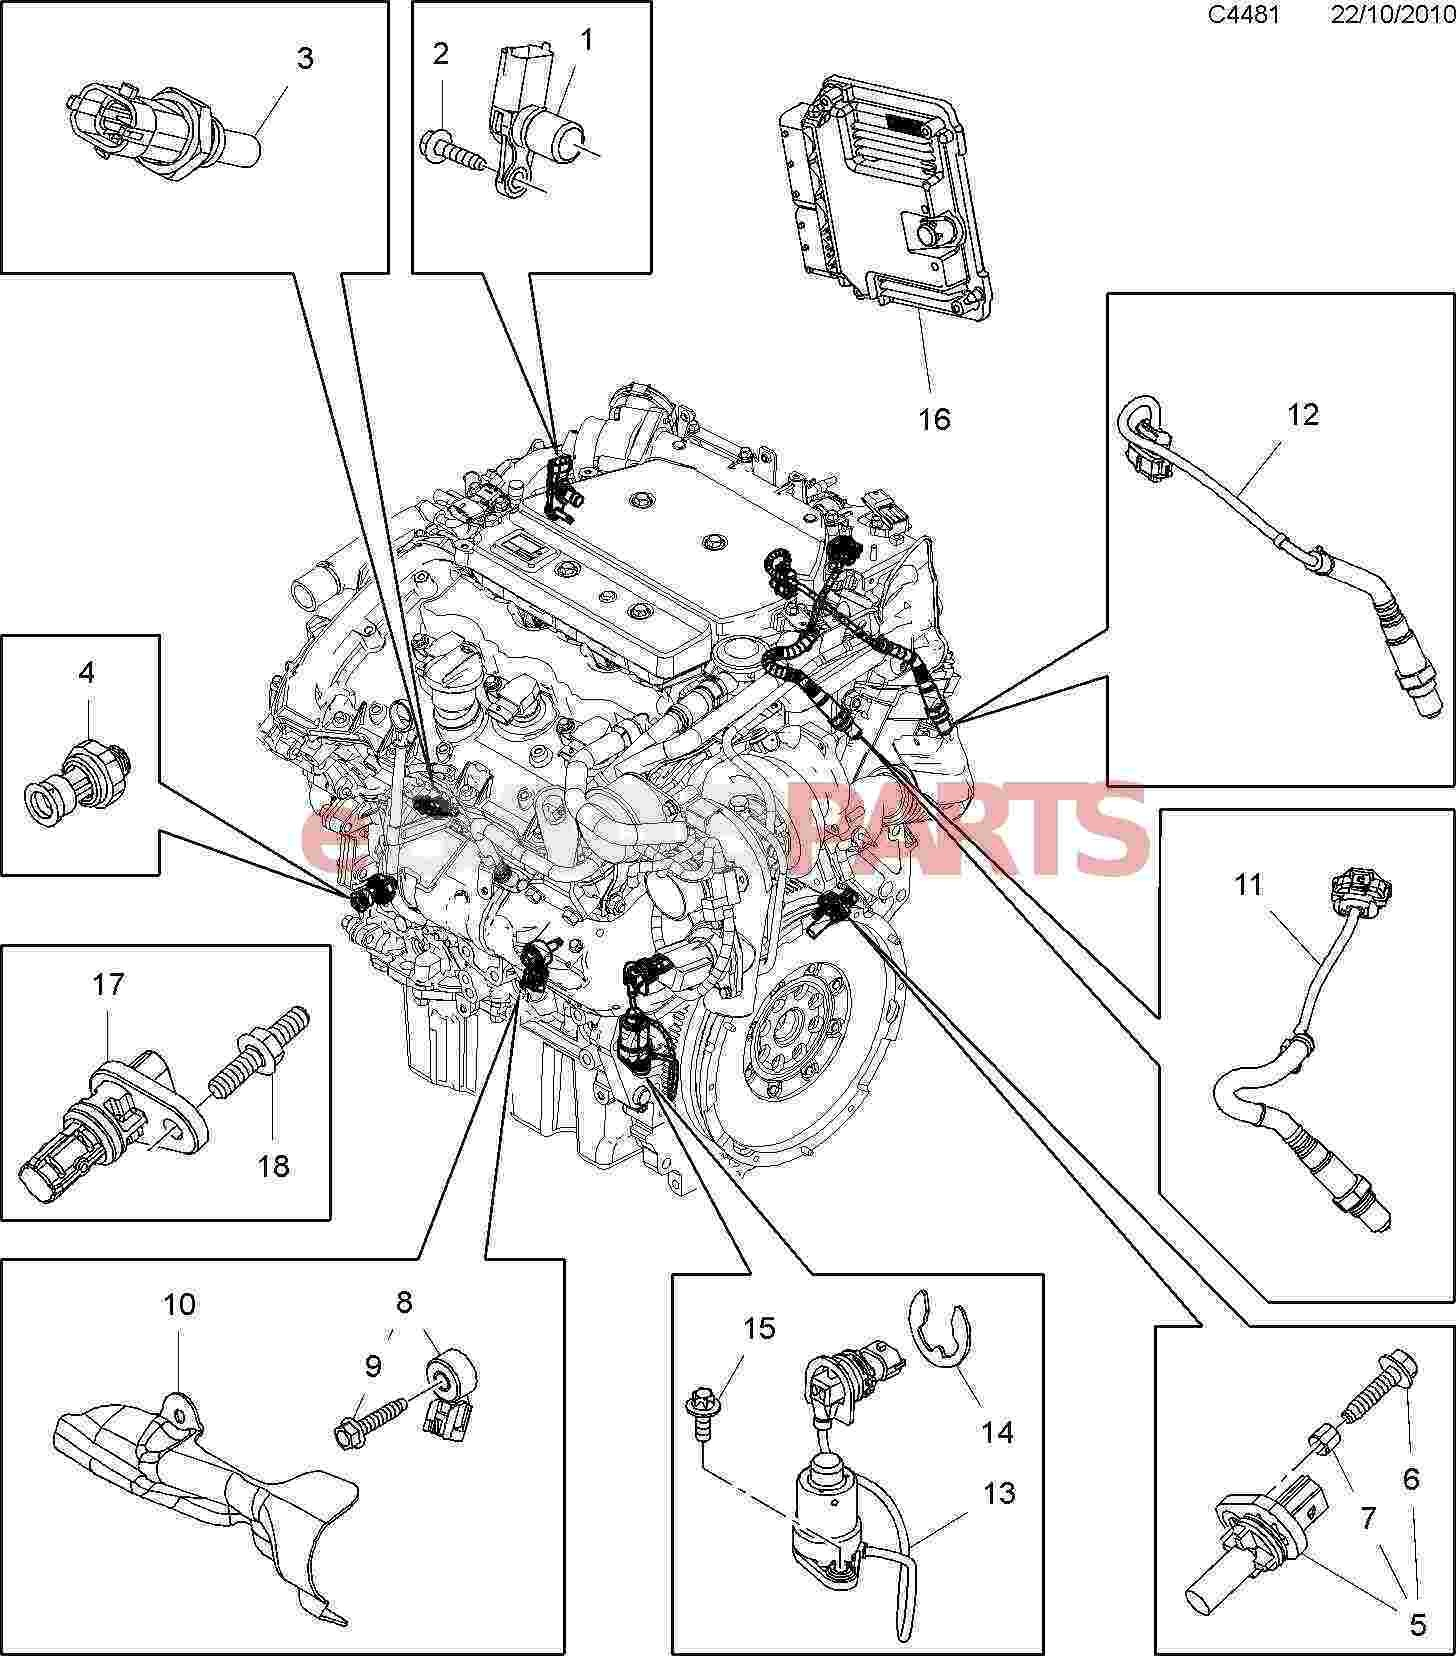 2002 jeep liberty cooling fan wiring diagram hecho wiring library 2002 jeep liberty cooling fan wiring diagram hecho [ 1456 x 1656 Pixel ]